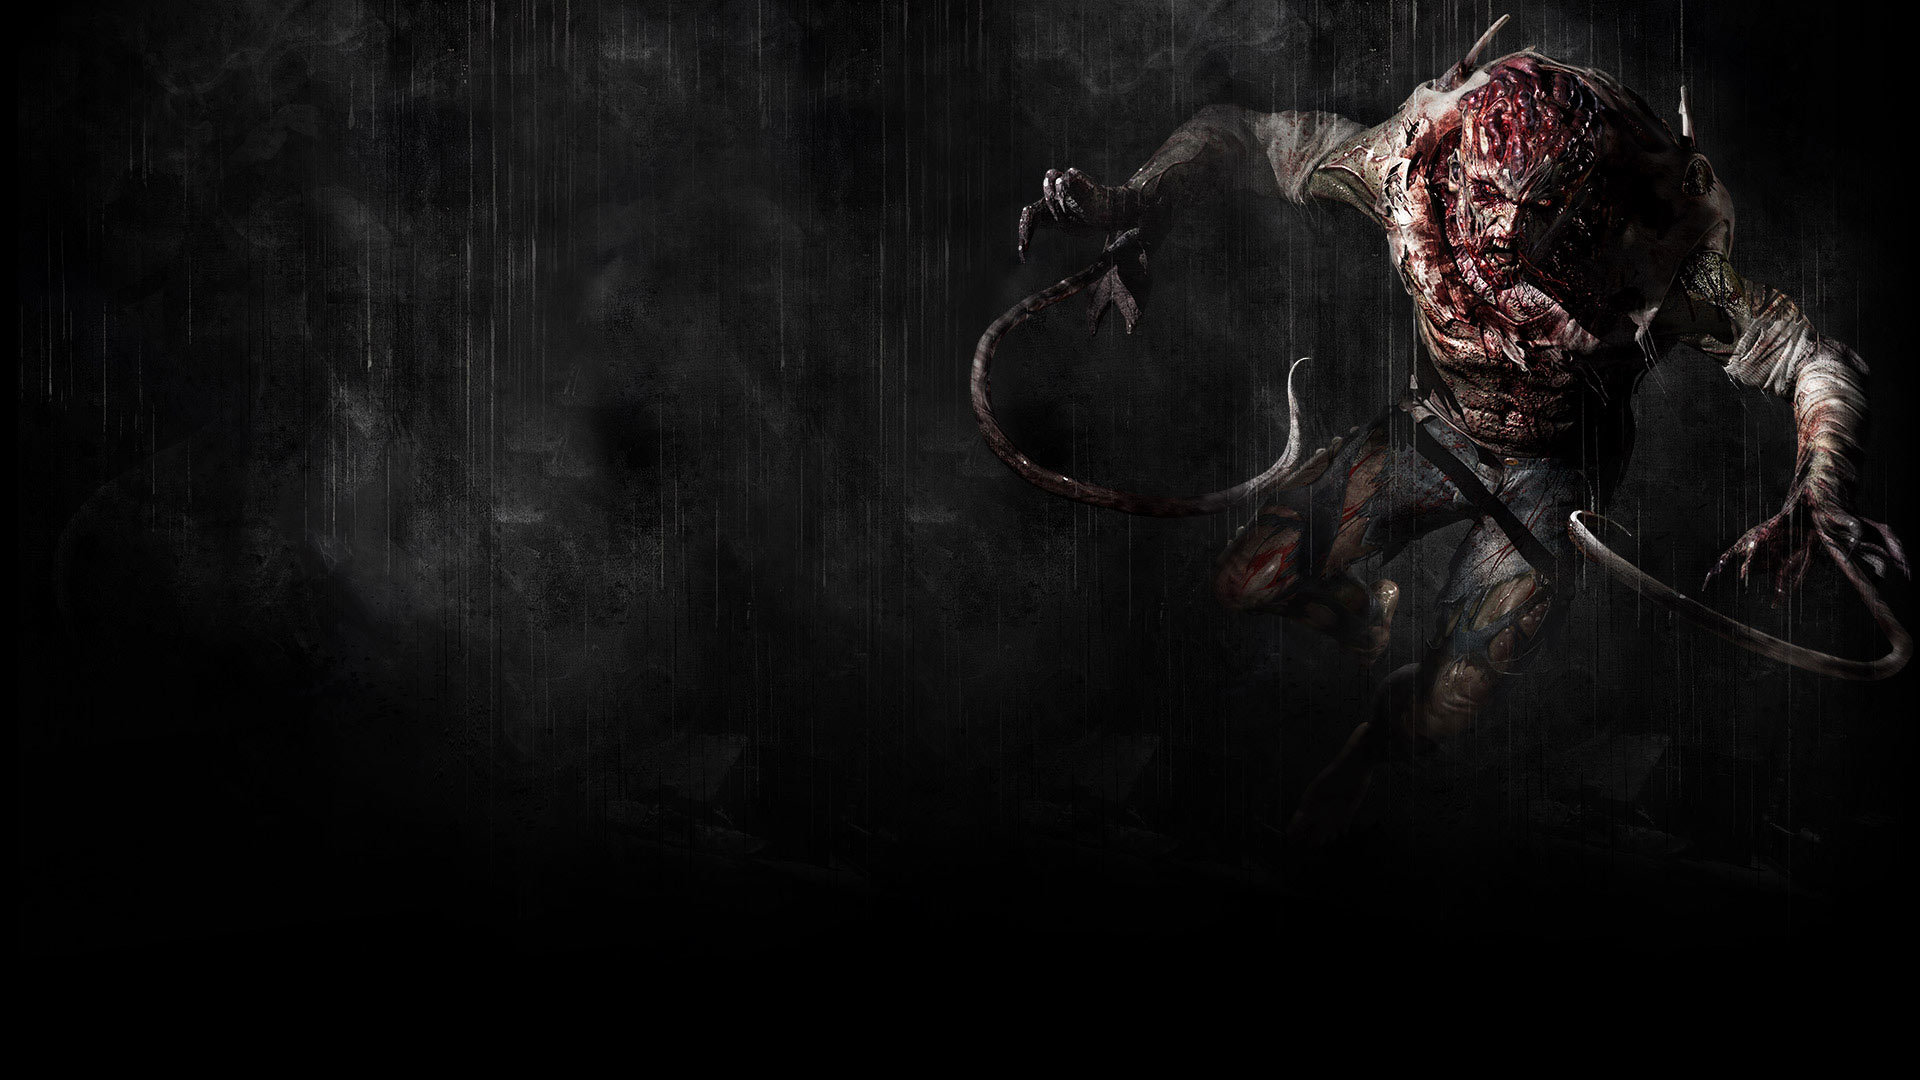 Skyrim Fall Wallpaper Hd Dying Light Full Hd Wallpaper And Background 1920x1080